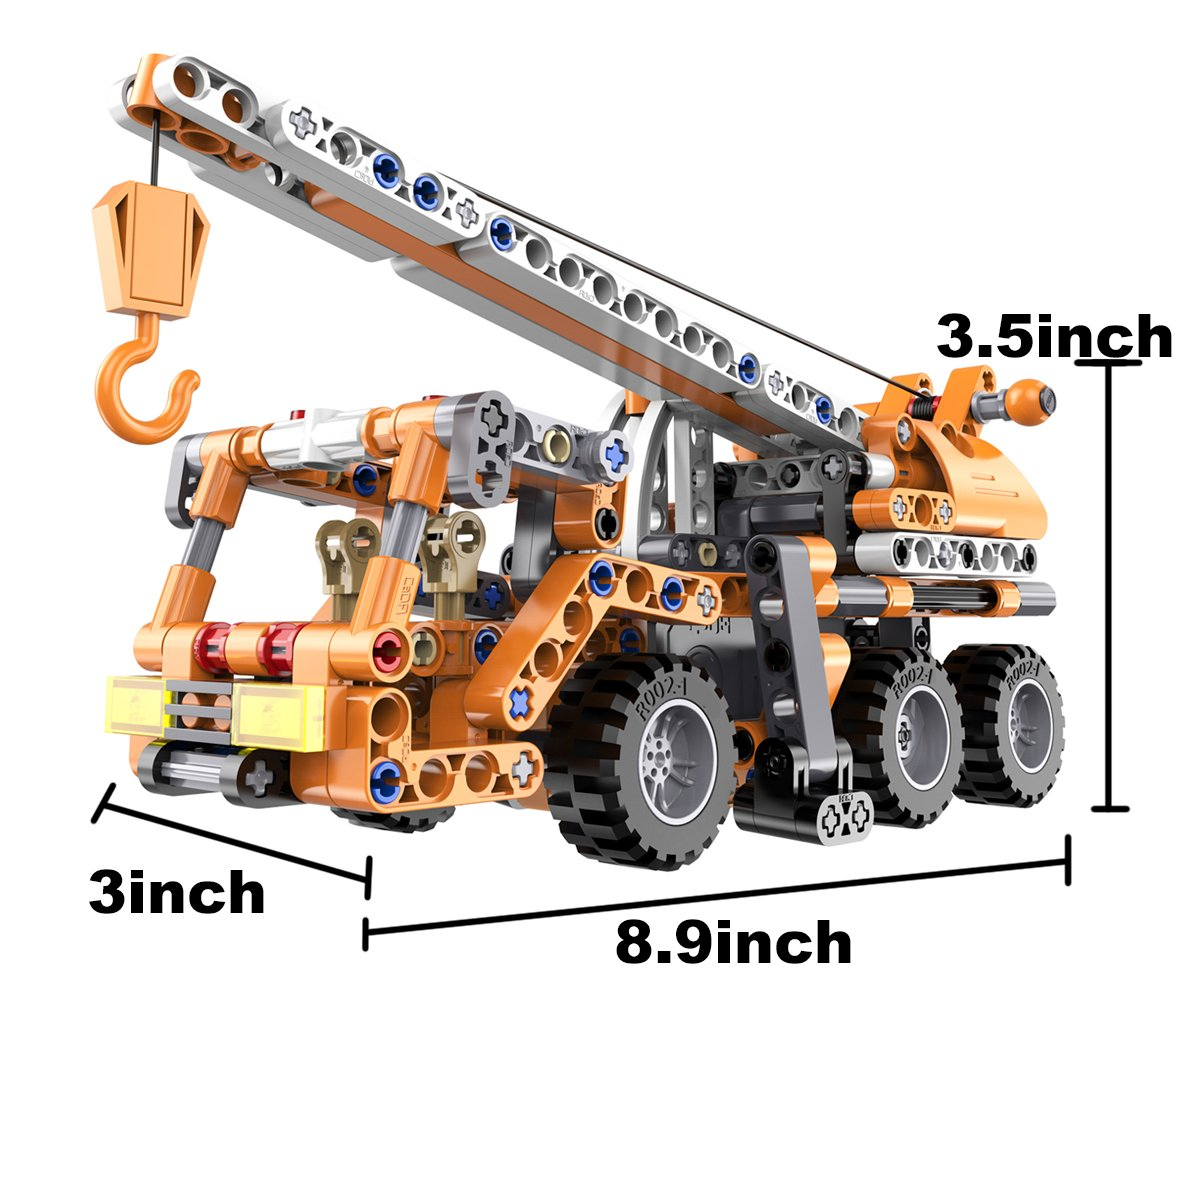 Hugine 272Pcs Mobile Pull Back Crane Building Blocks,Construction Toy Assembled Engineering Vehicle Construction Truck DIY Education Toys for Kids (C52013)